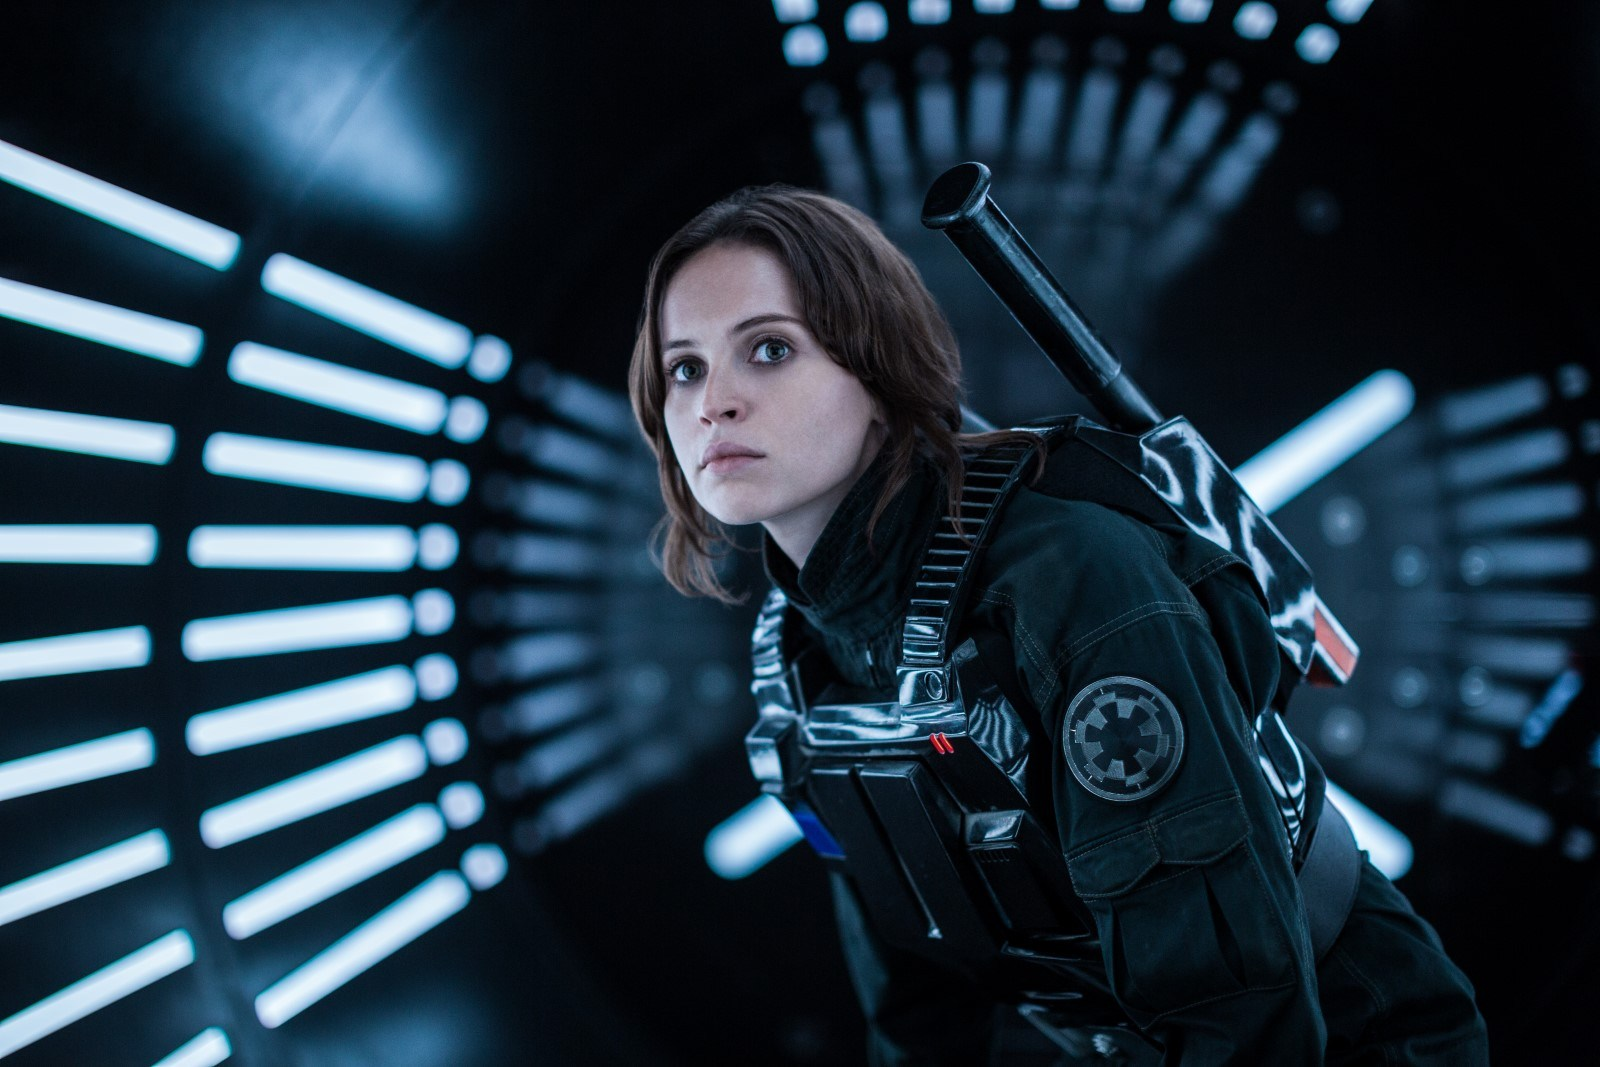 [CRITIQUE] ROGUE ONE: A STAR WARS STORY